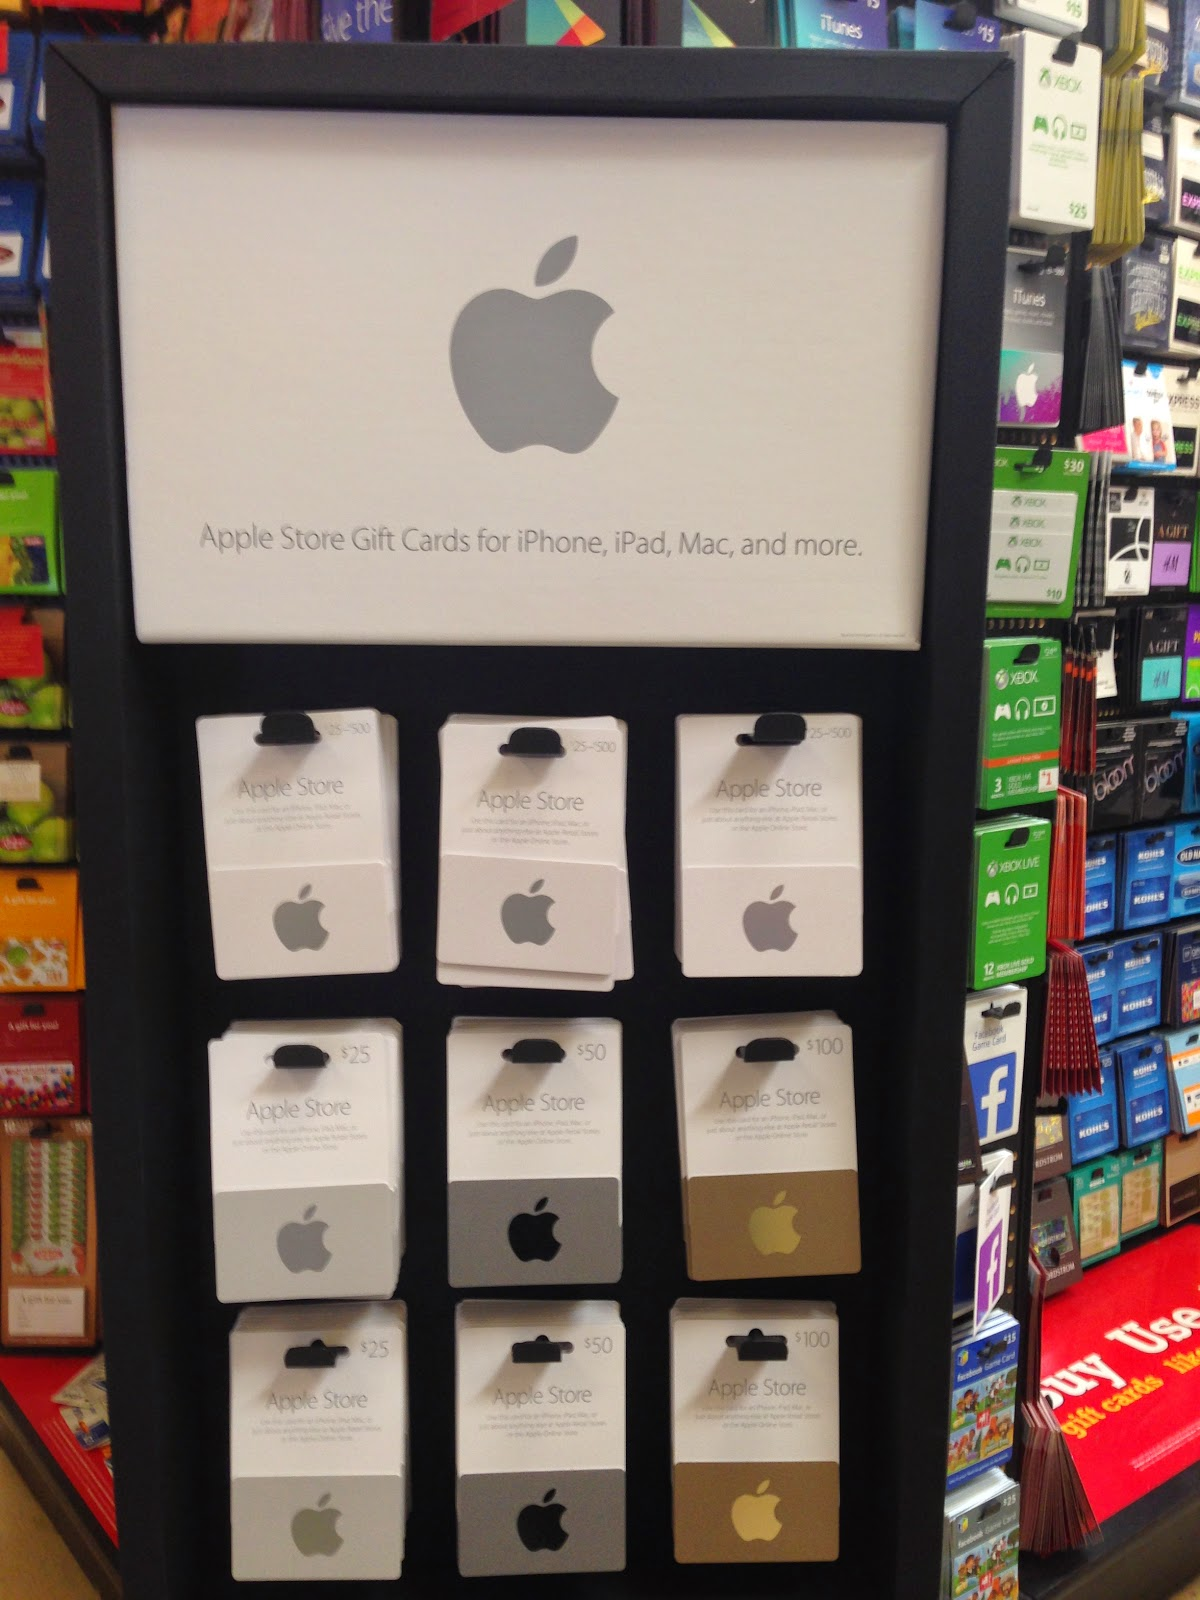 Tech Talk 4 Geeks: Apple Store Gift Cards Based on iPhone Colors